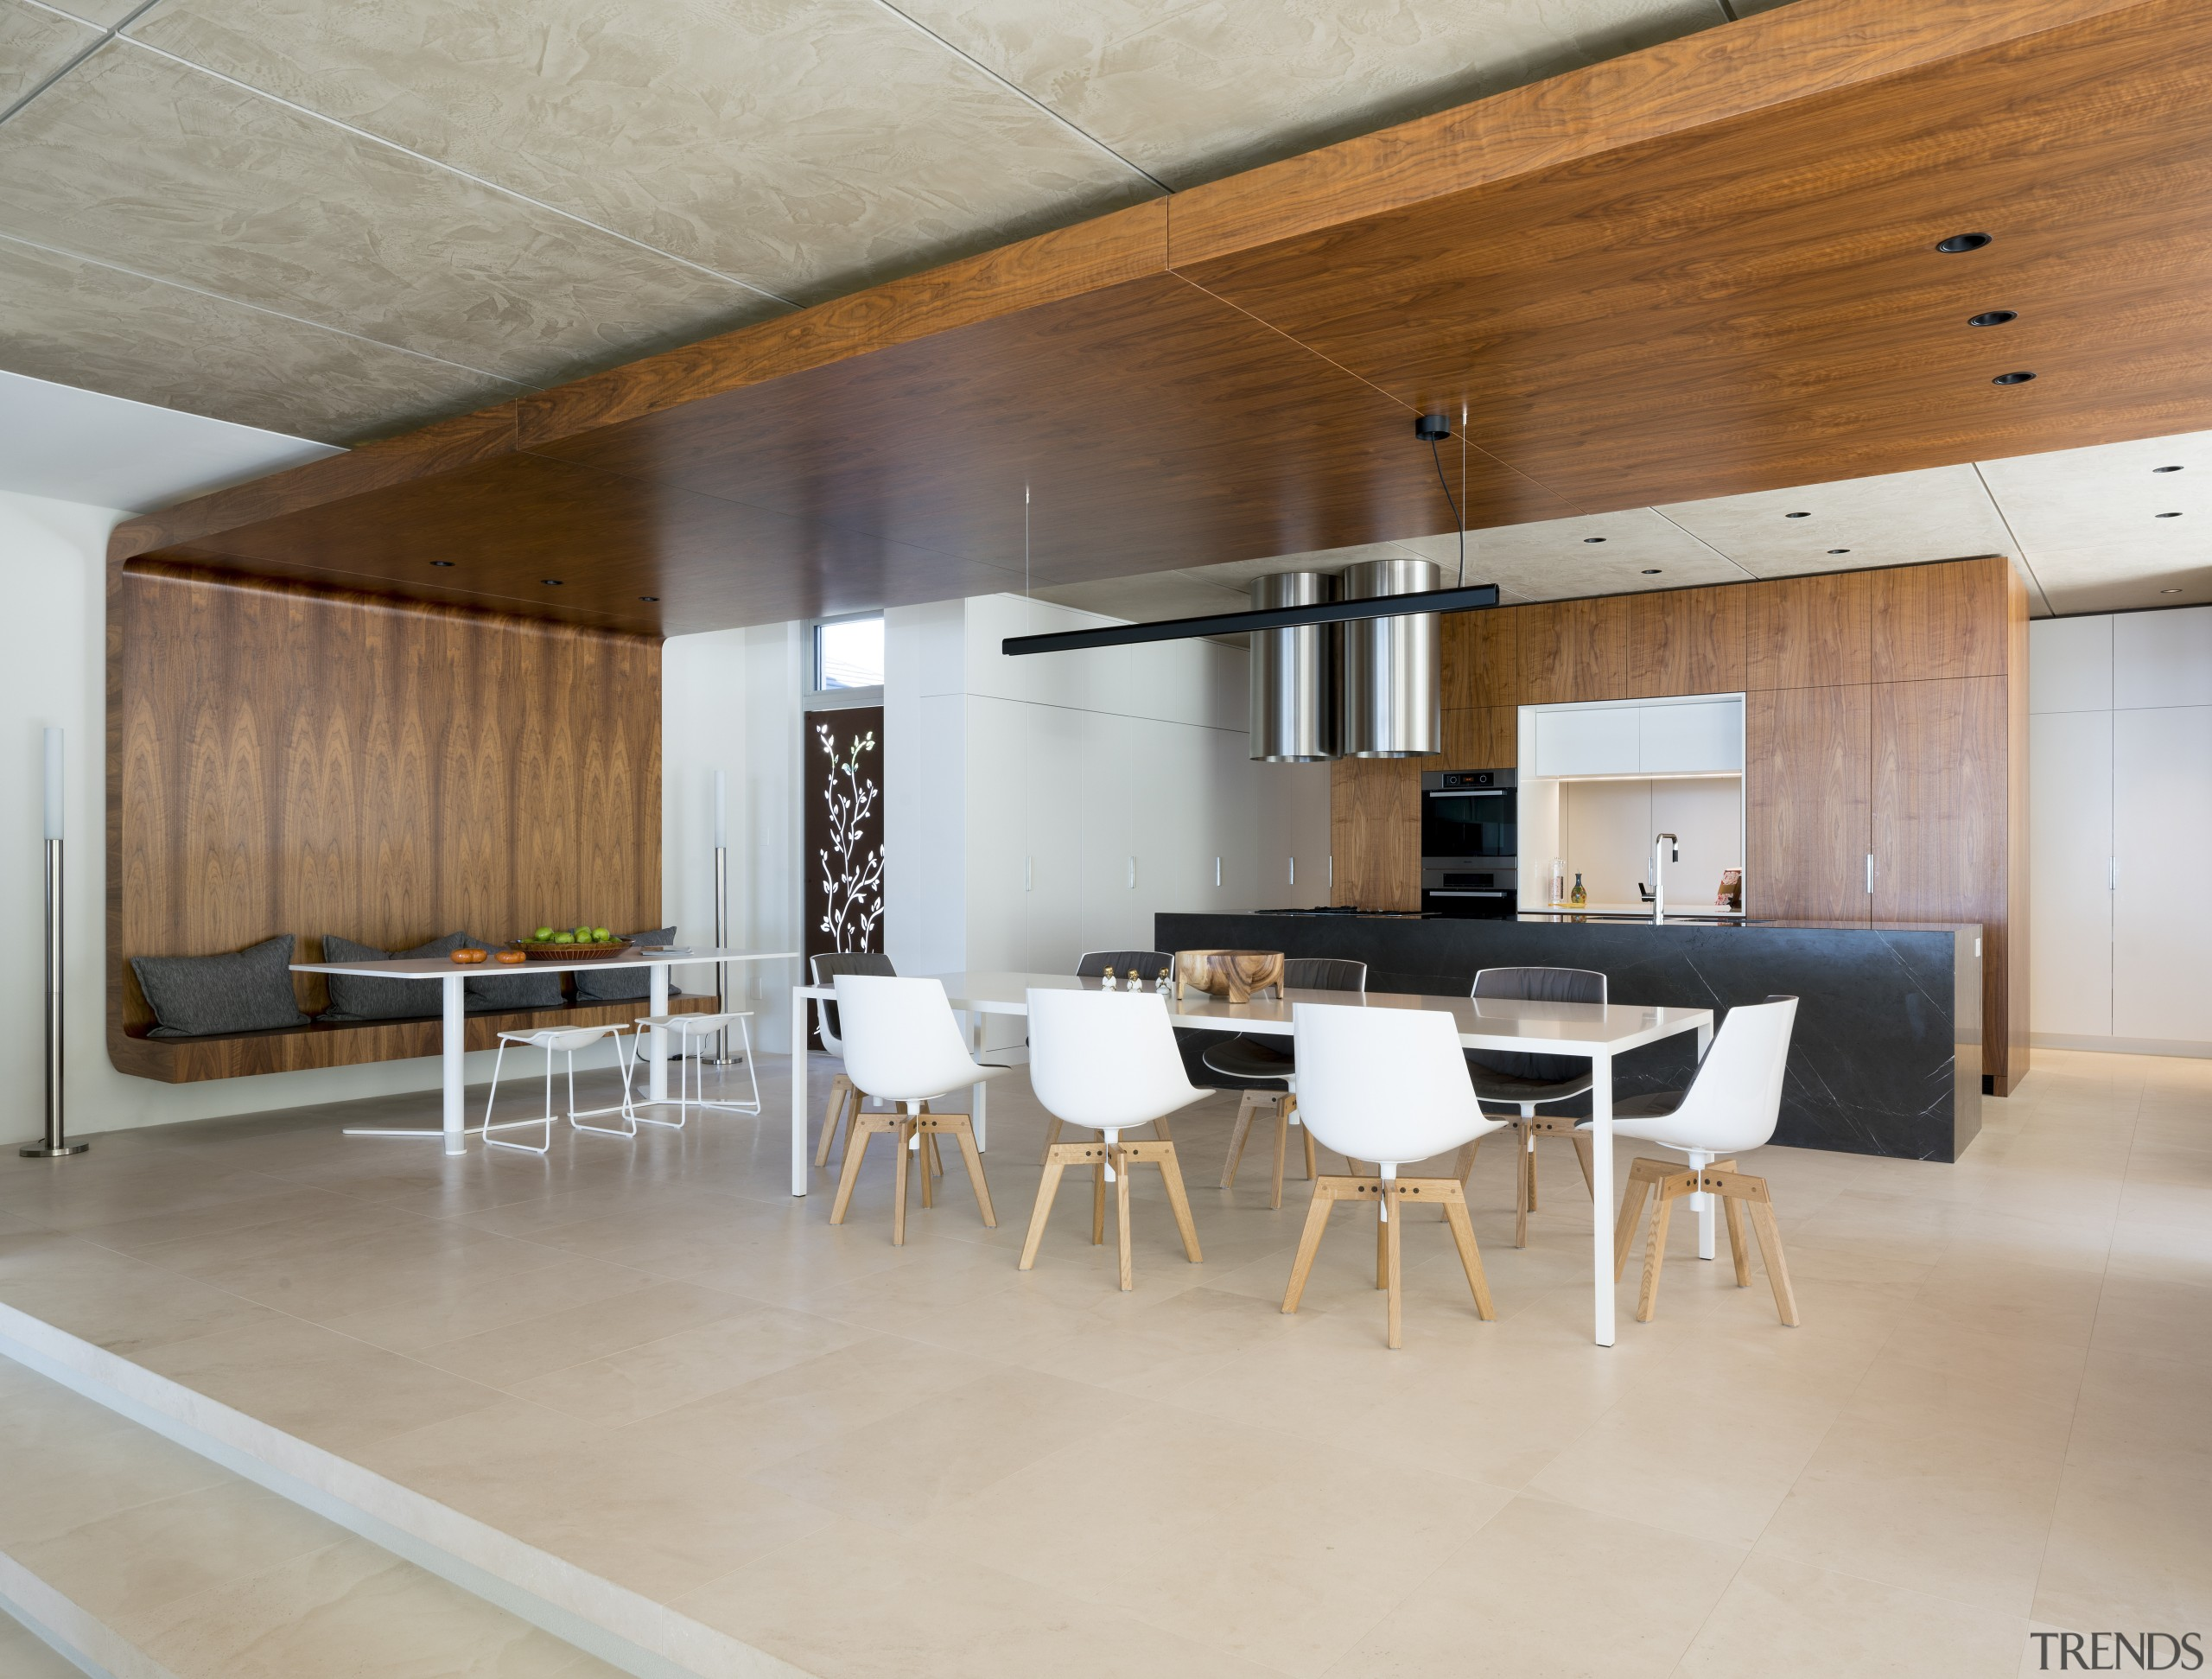 A large timber wrap-around adds to the emphasis architecture, ceiling, floor, flooring, furniture, house, interior design, real estate, table, gray